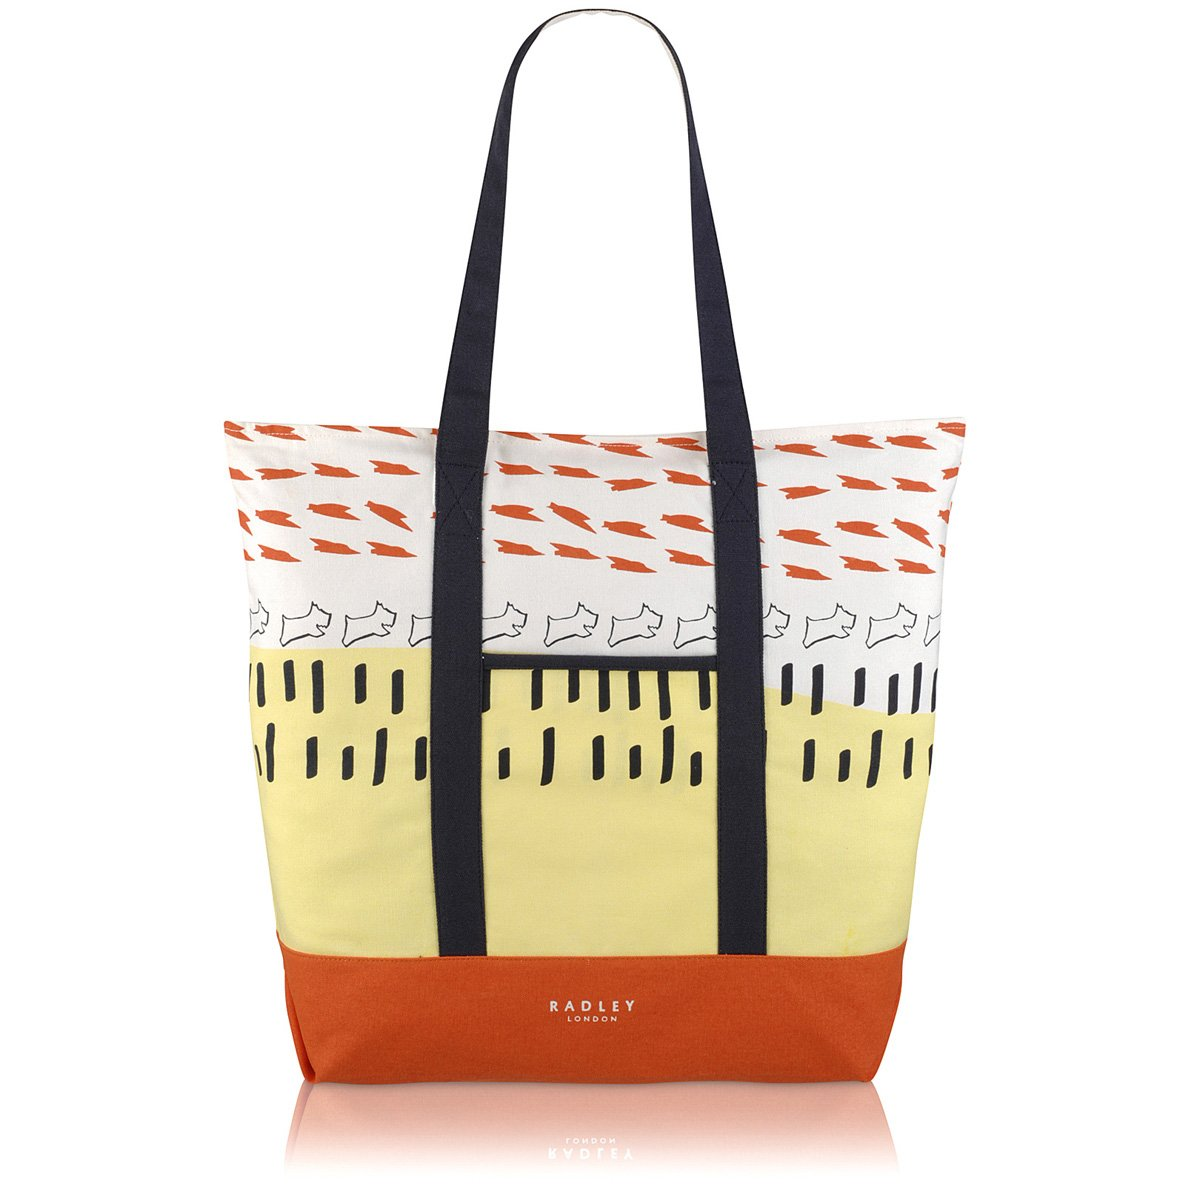 8f65cbbf6d8 Radley Love Me, Love My Dog Large Ziptop Tote Bag AW16 - LARGE, NATURAL   Amazon.co.uk  Shoes   Bags